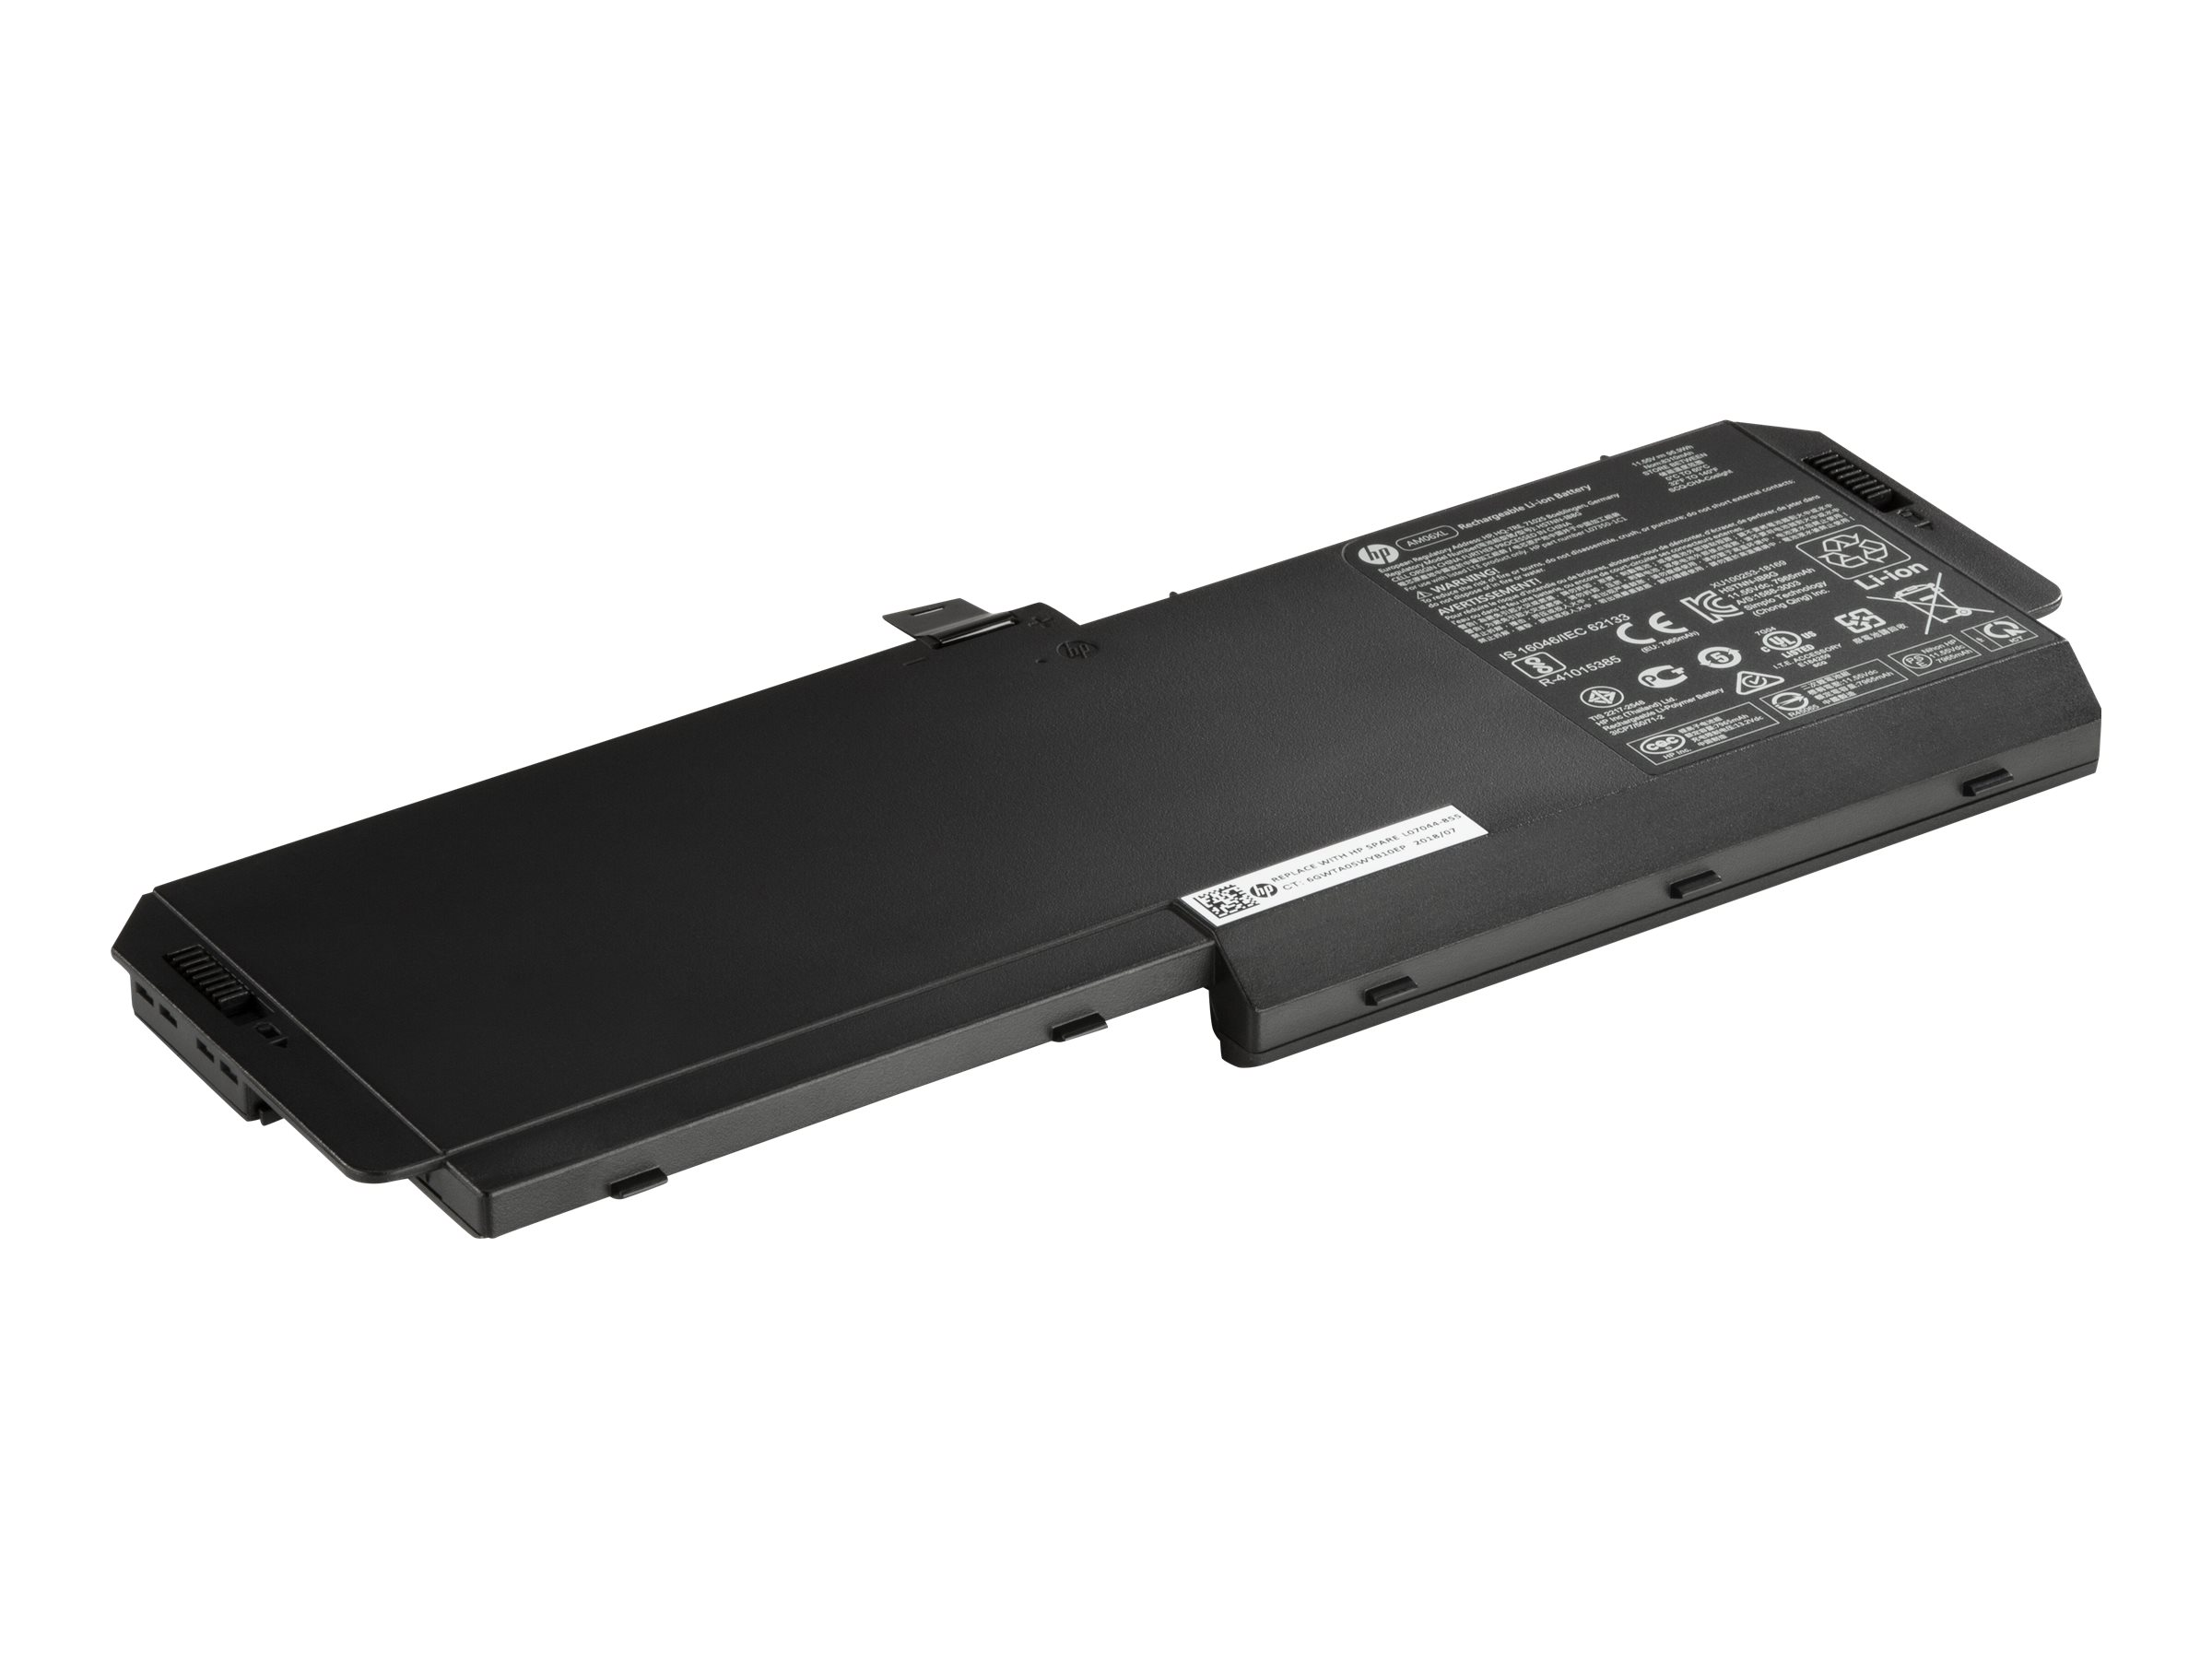 HP - notebook battery - 95 Wh